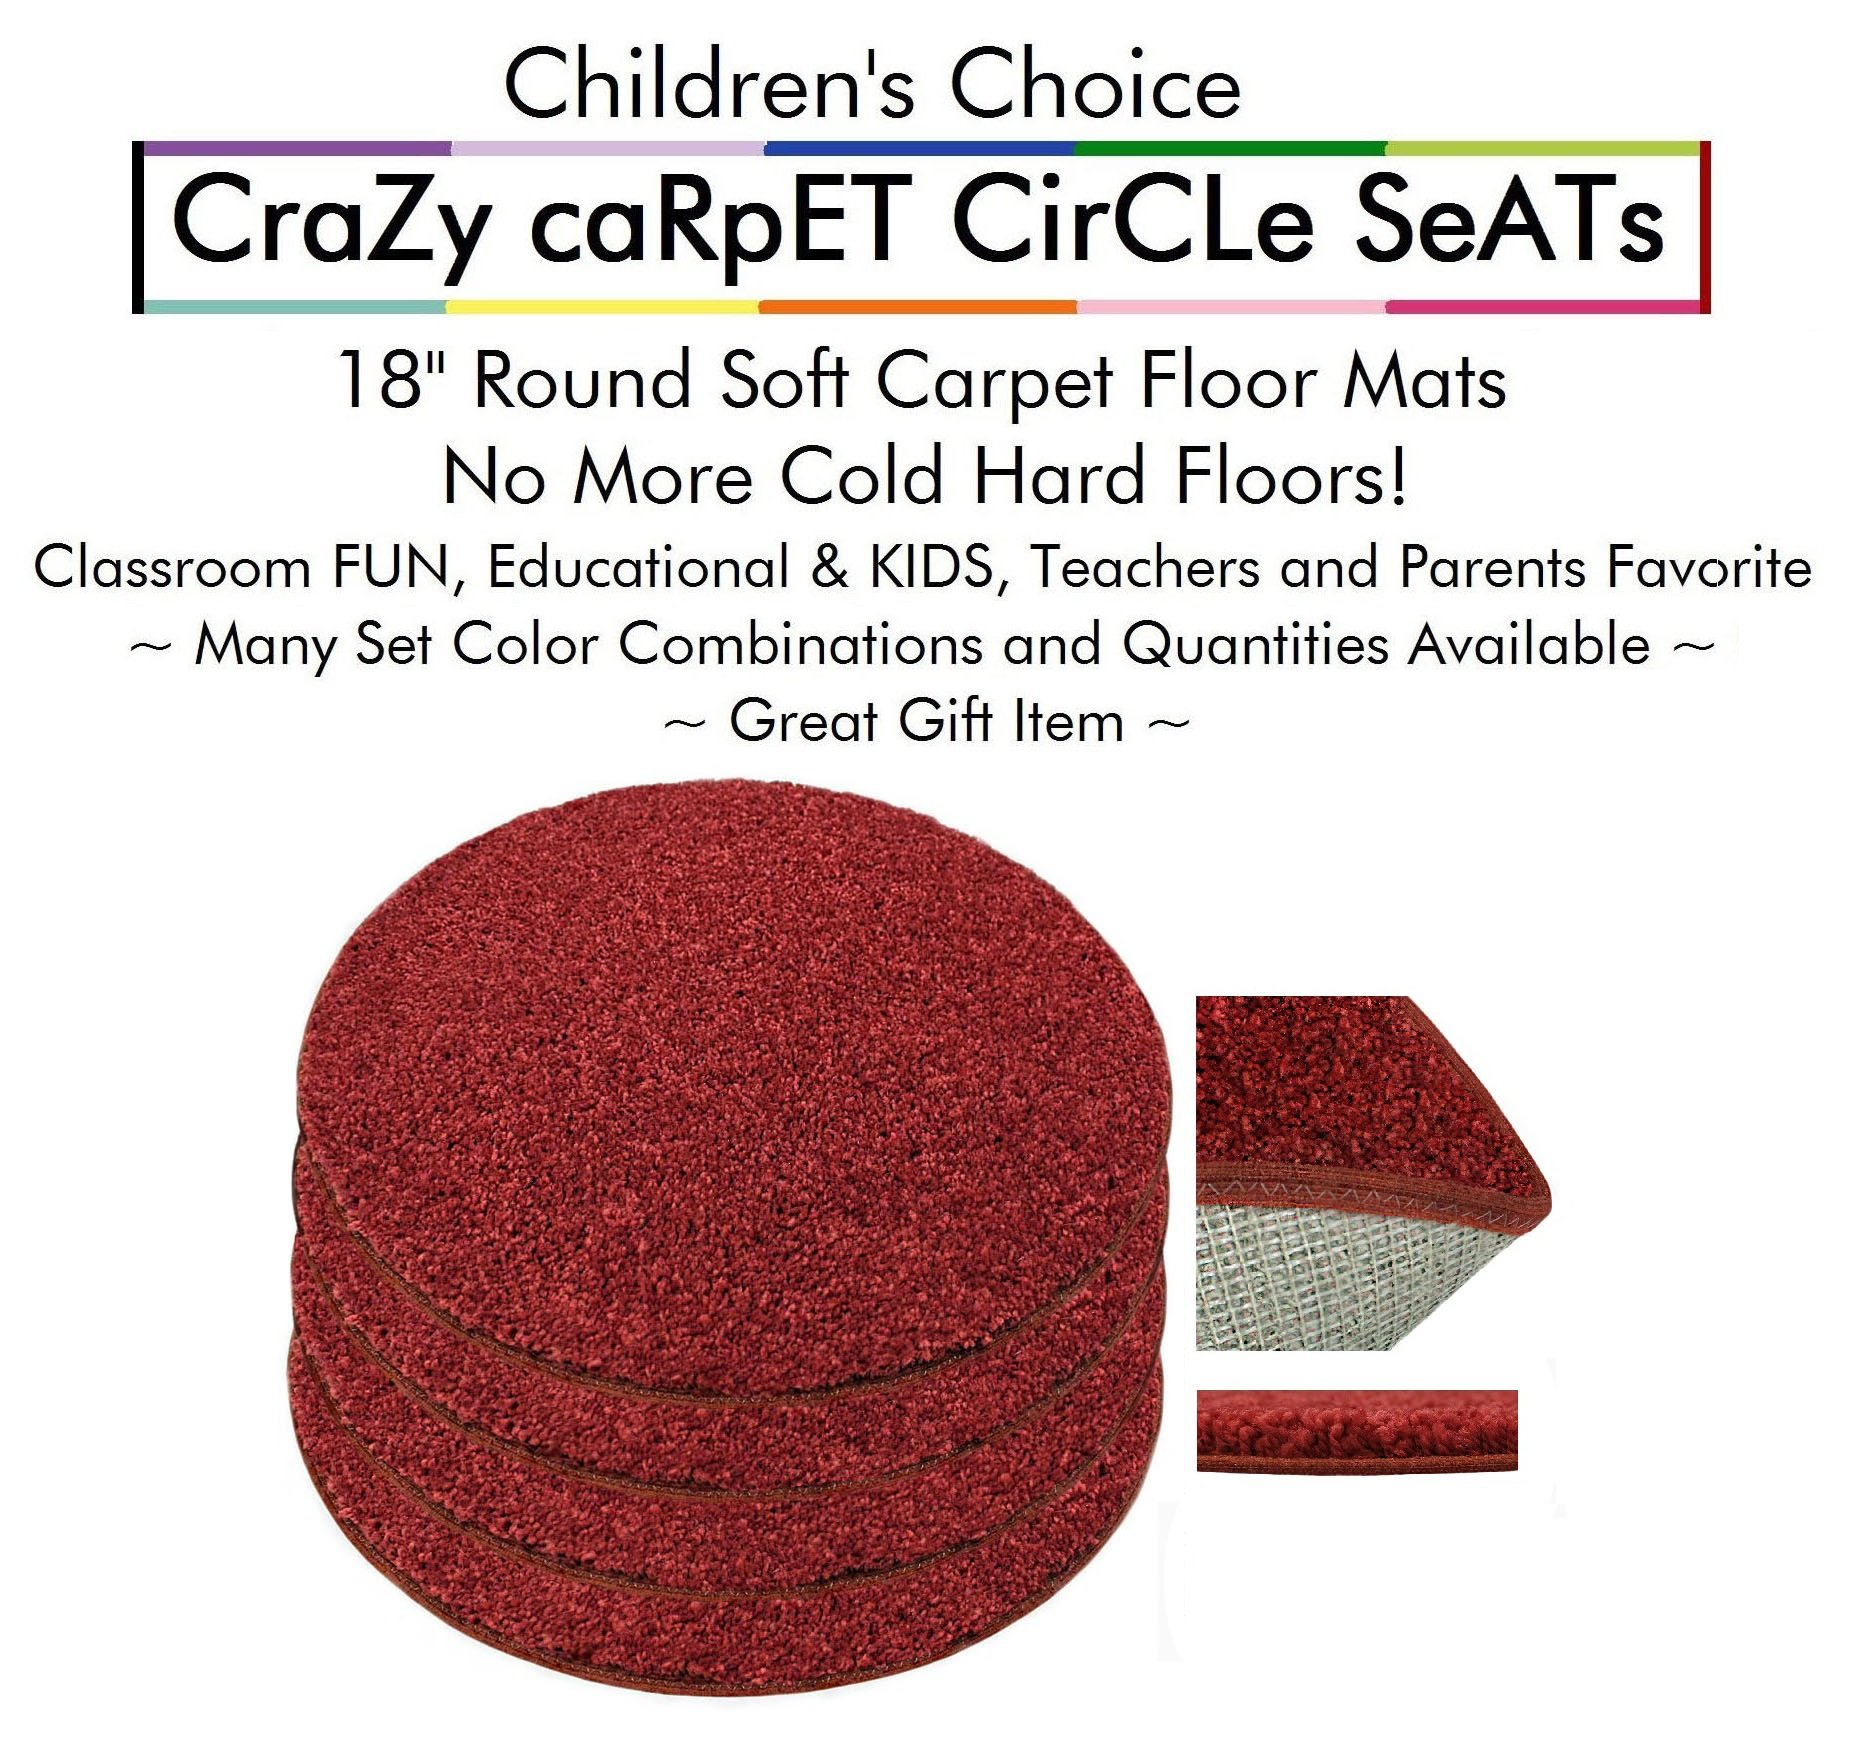 """Set 4 - Dragon Fire Kids CraZy CarPet CirCle SeaTs 18"""" Round Soft Warm Floor Mat - Cushions   Classroom, Story Time, Group Activity, Time-Out Spot Marker and Fun. Home Bedroom & Play Areas"""